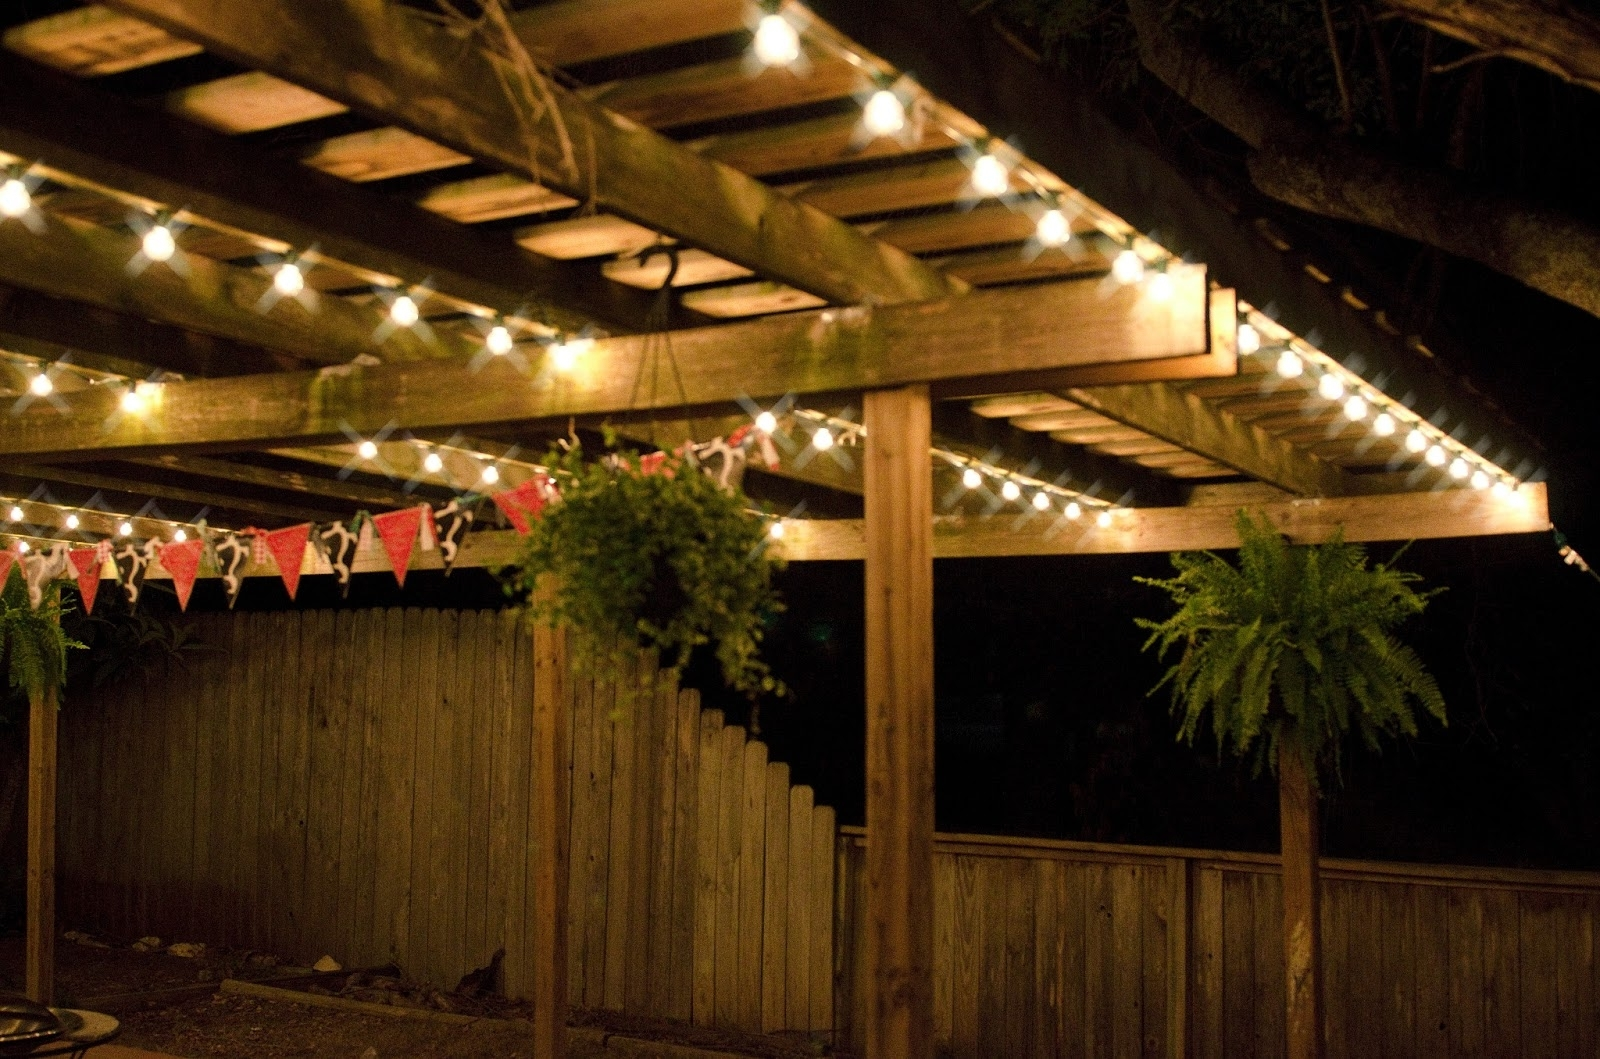 Solar Hanging Outdoor Patio Lights Inside Best And Newest Outdoor Hanging String Lights Stringhts Bella Vista Designs Patio (View 9 of 20)